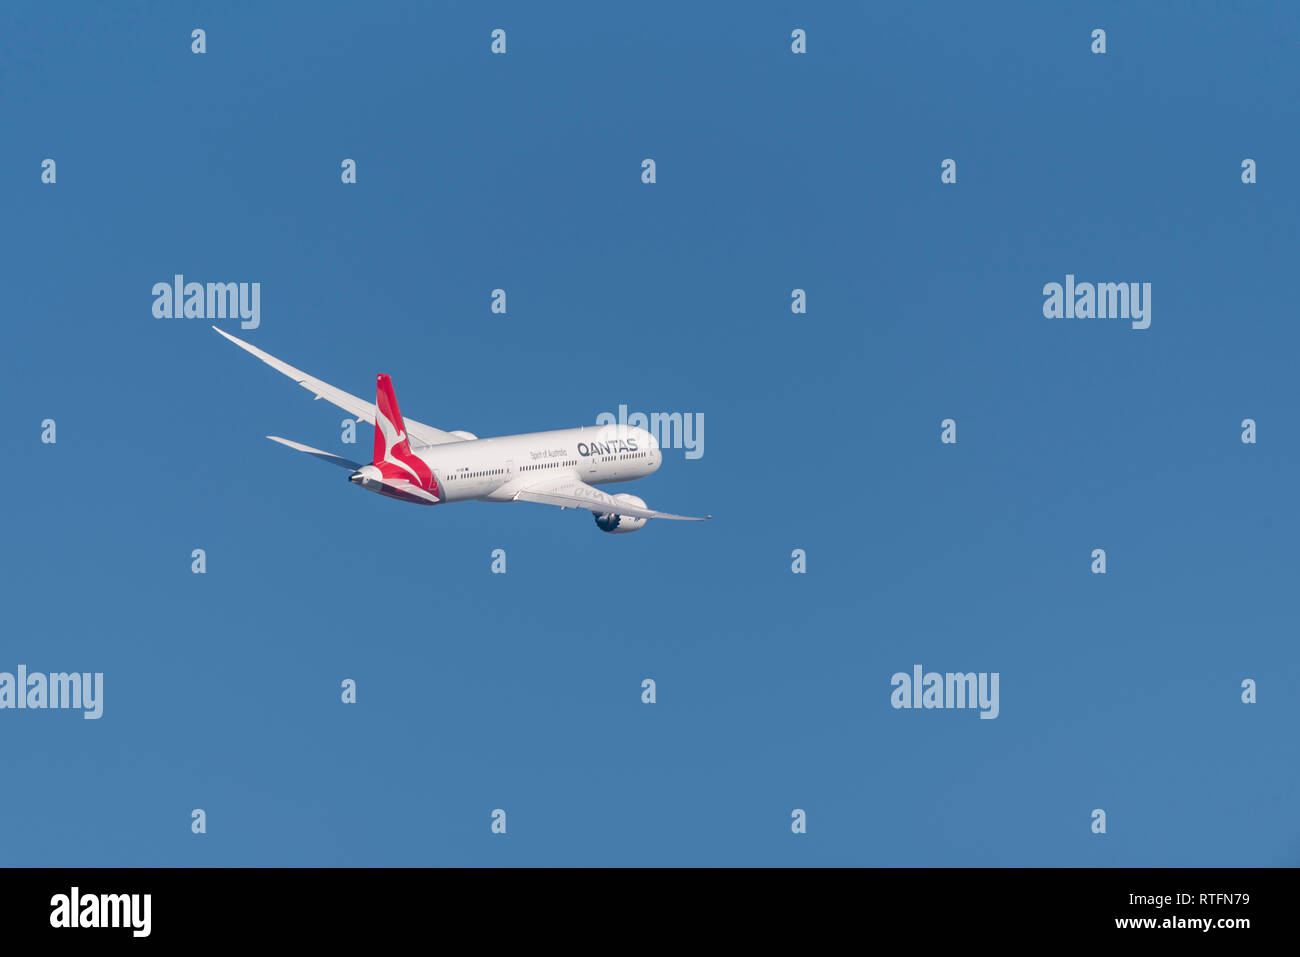 QANTAS Boeing 787 Dreamliner jet airliner plane VH-ZNE taking off from London Heathrow Airport, UK, in blue sky. Flight departure. Space for copy - Stock Image